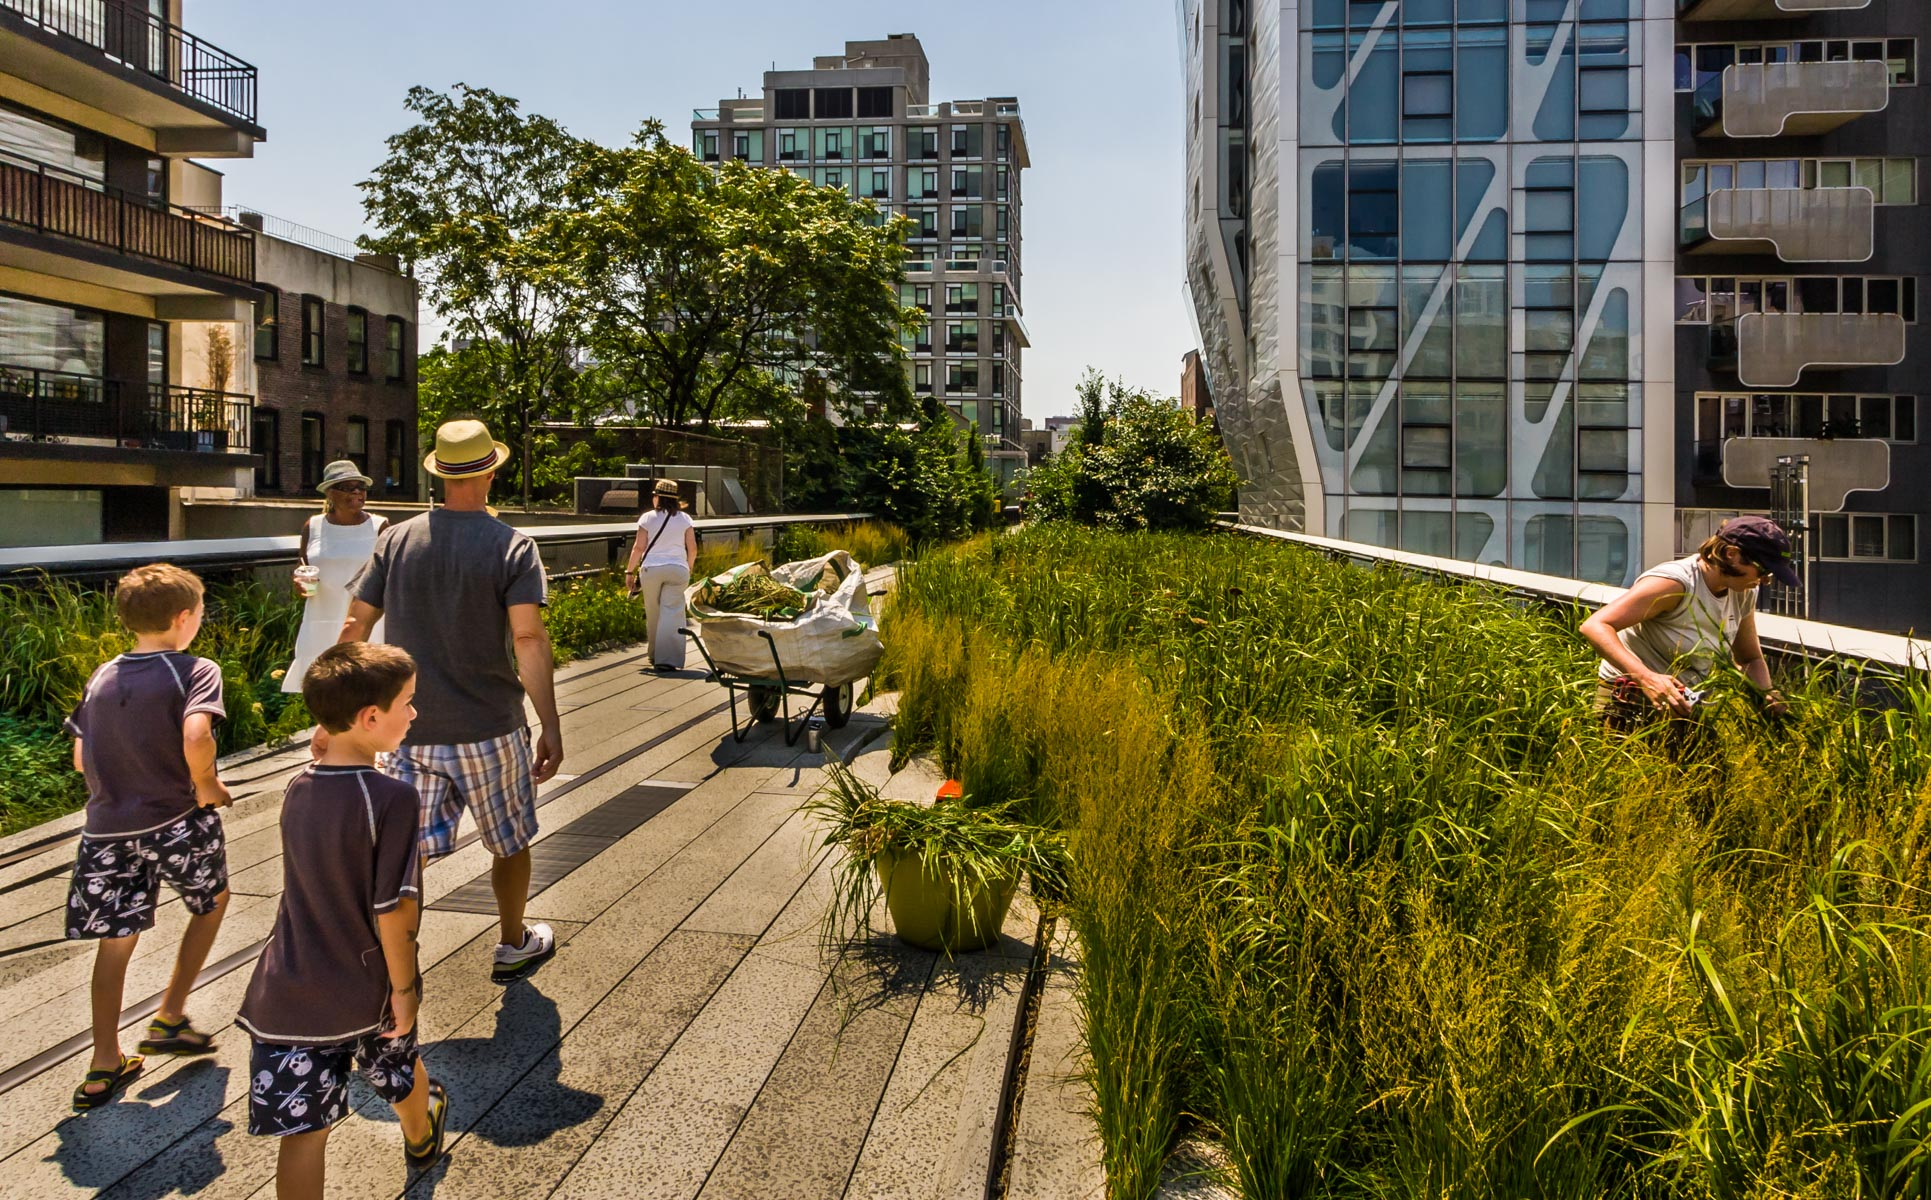 highline_nyc_201208-6